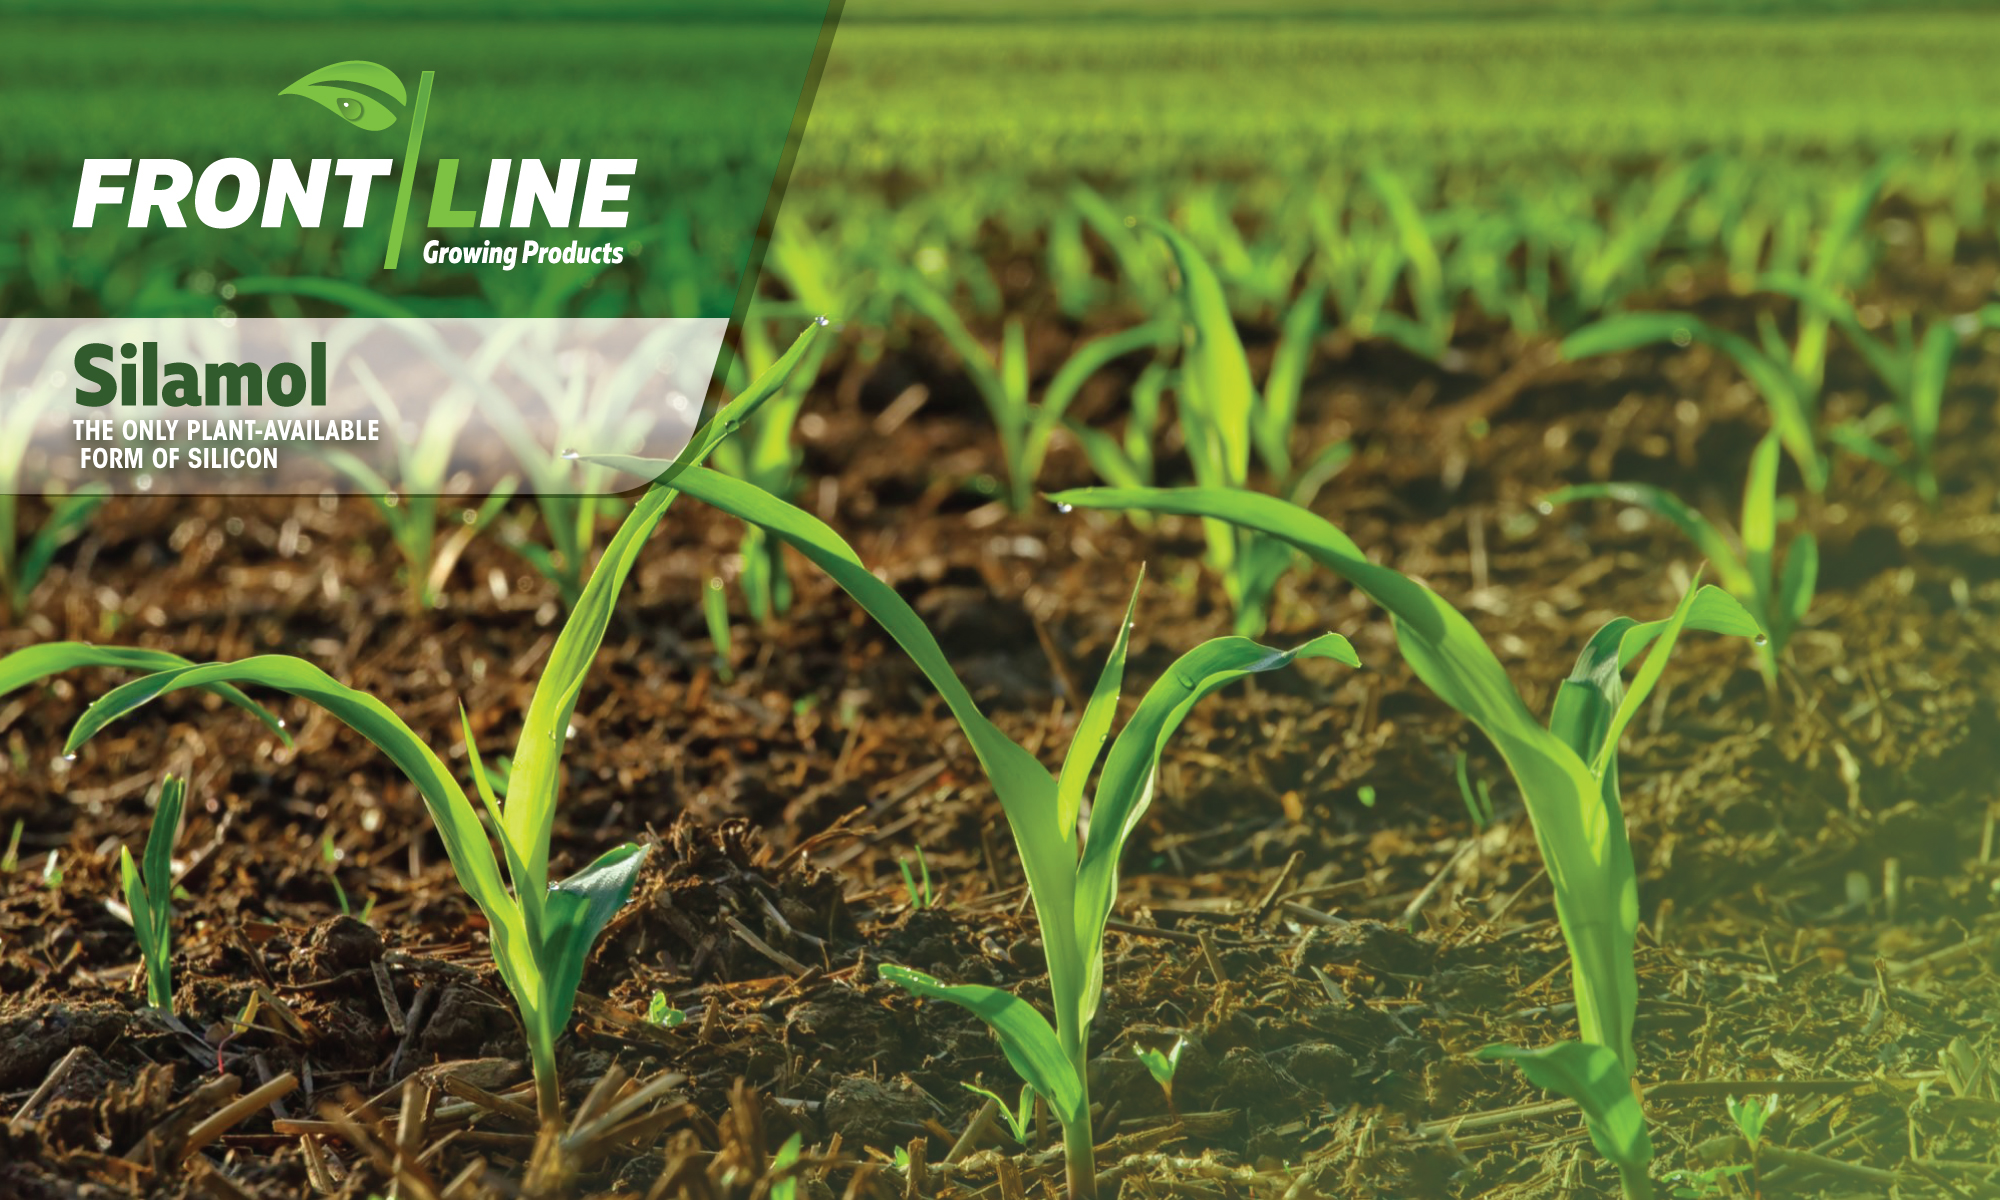 Frontline Growing Products Inc.